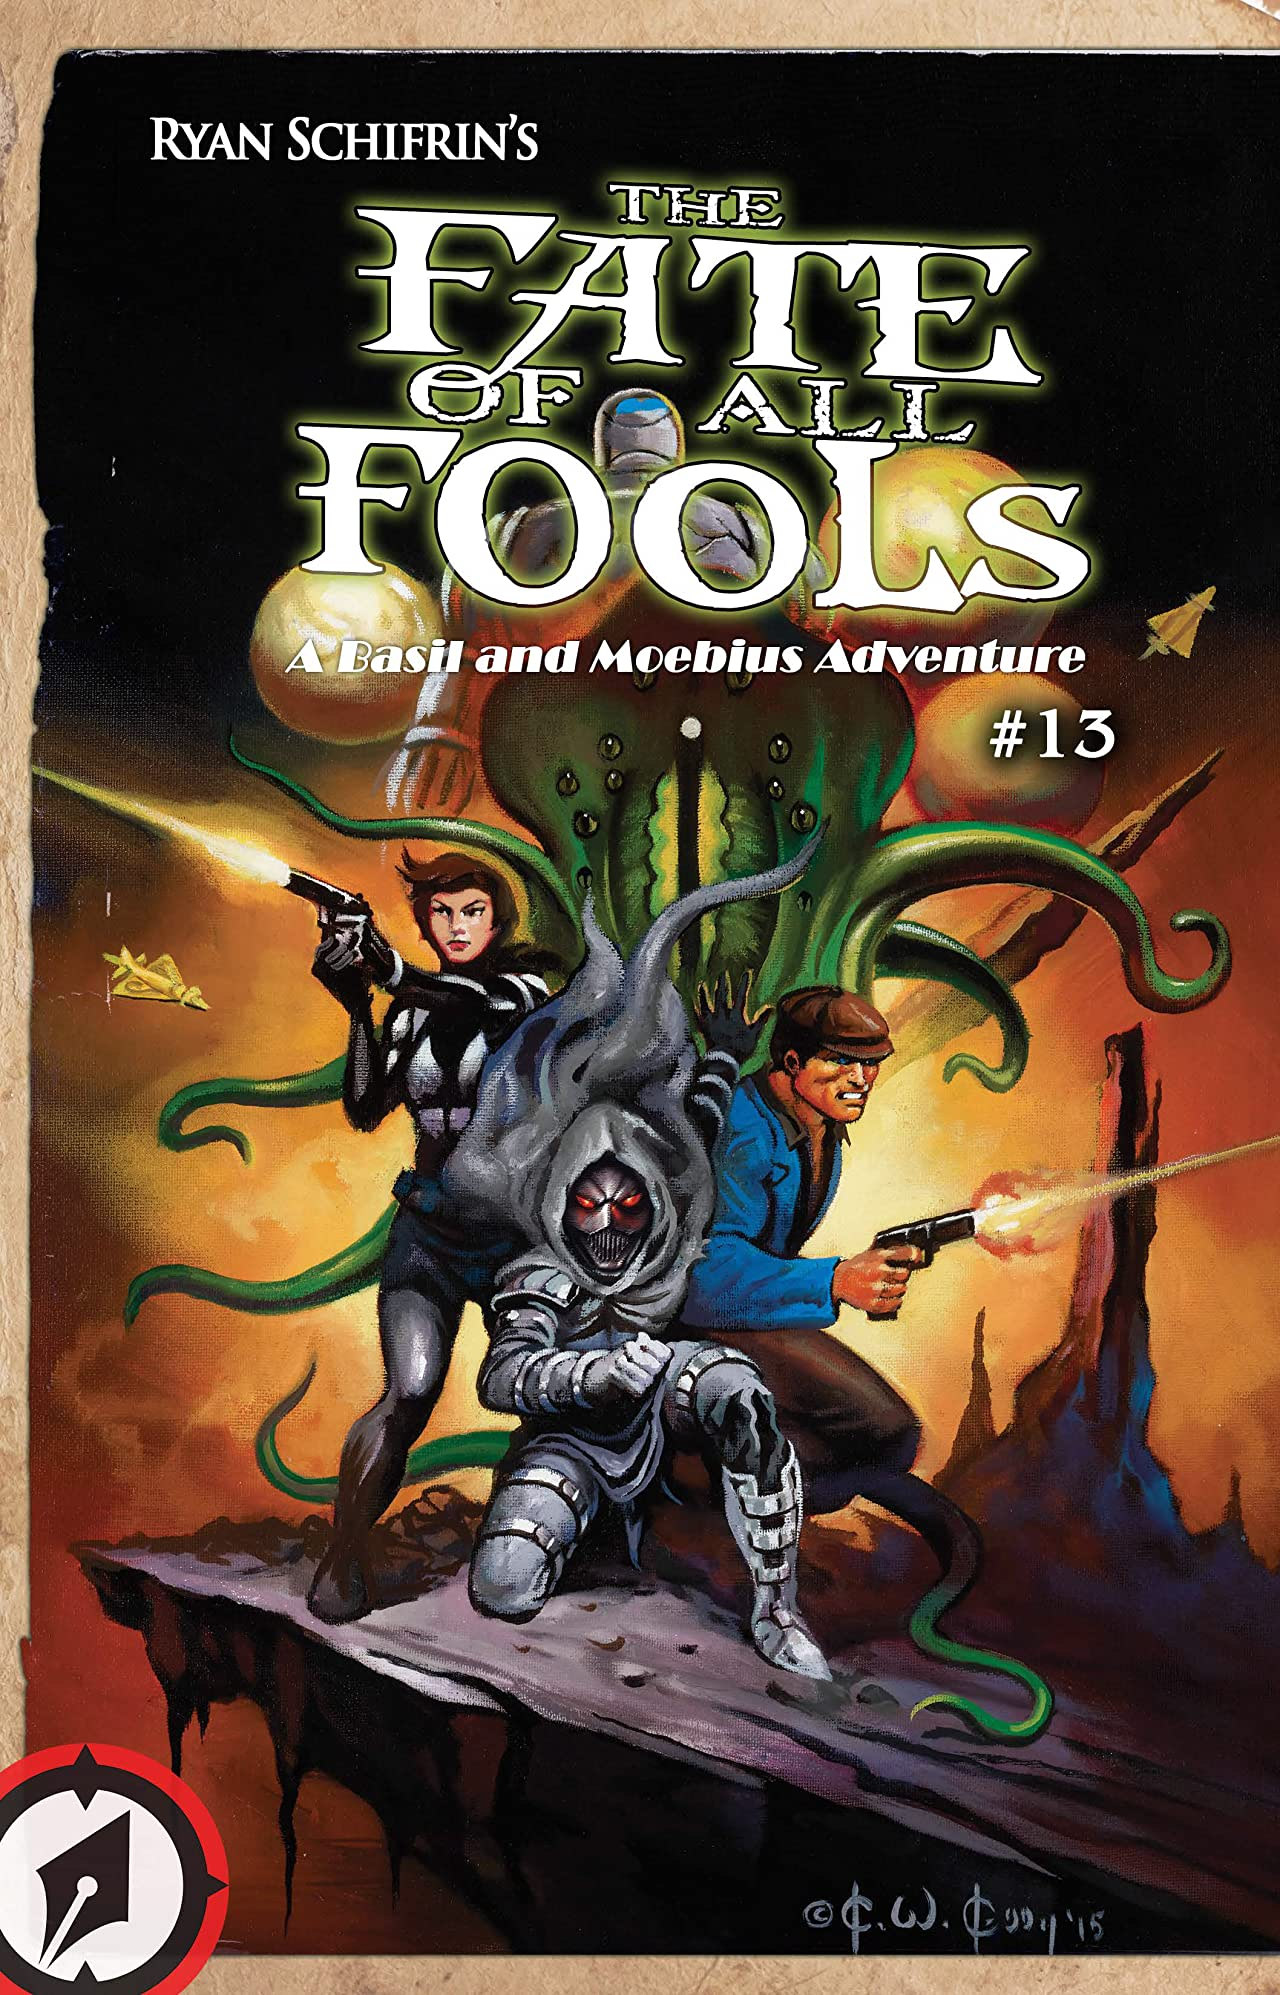 The Adventures of Basil and Moebius Vol. 4: The Fate of All Fools